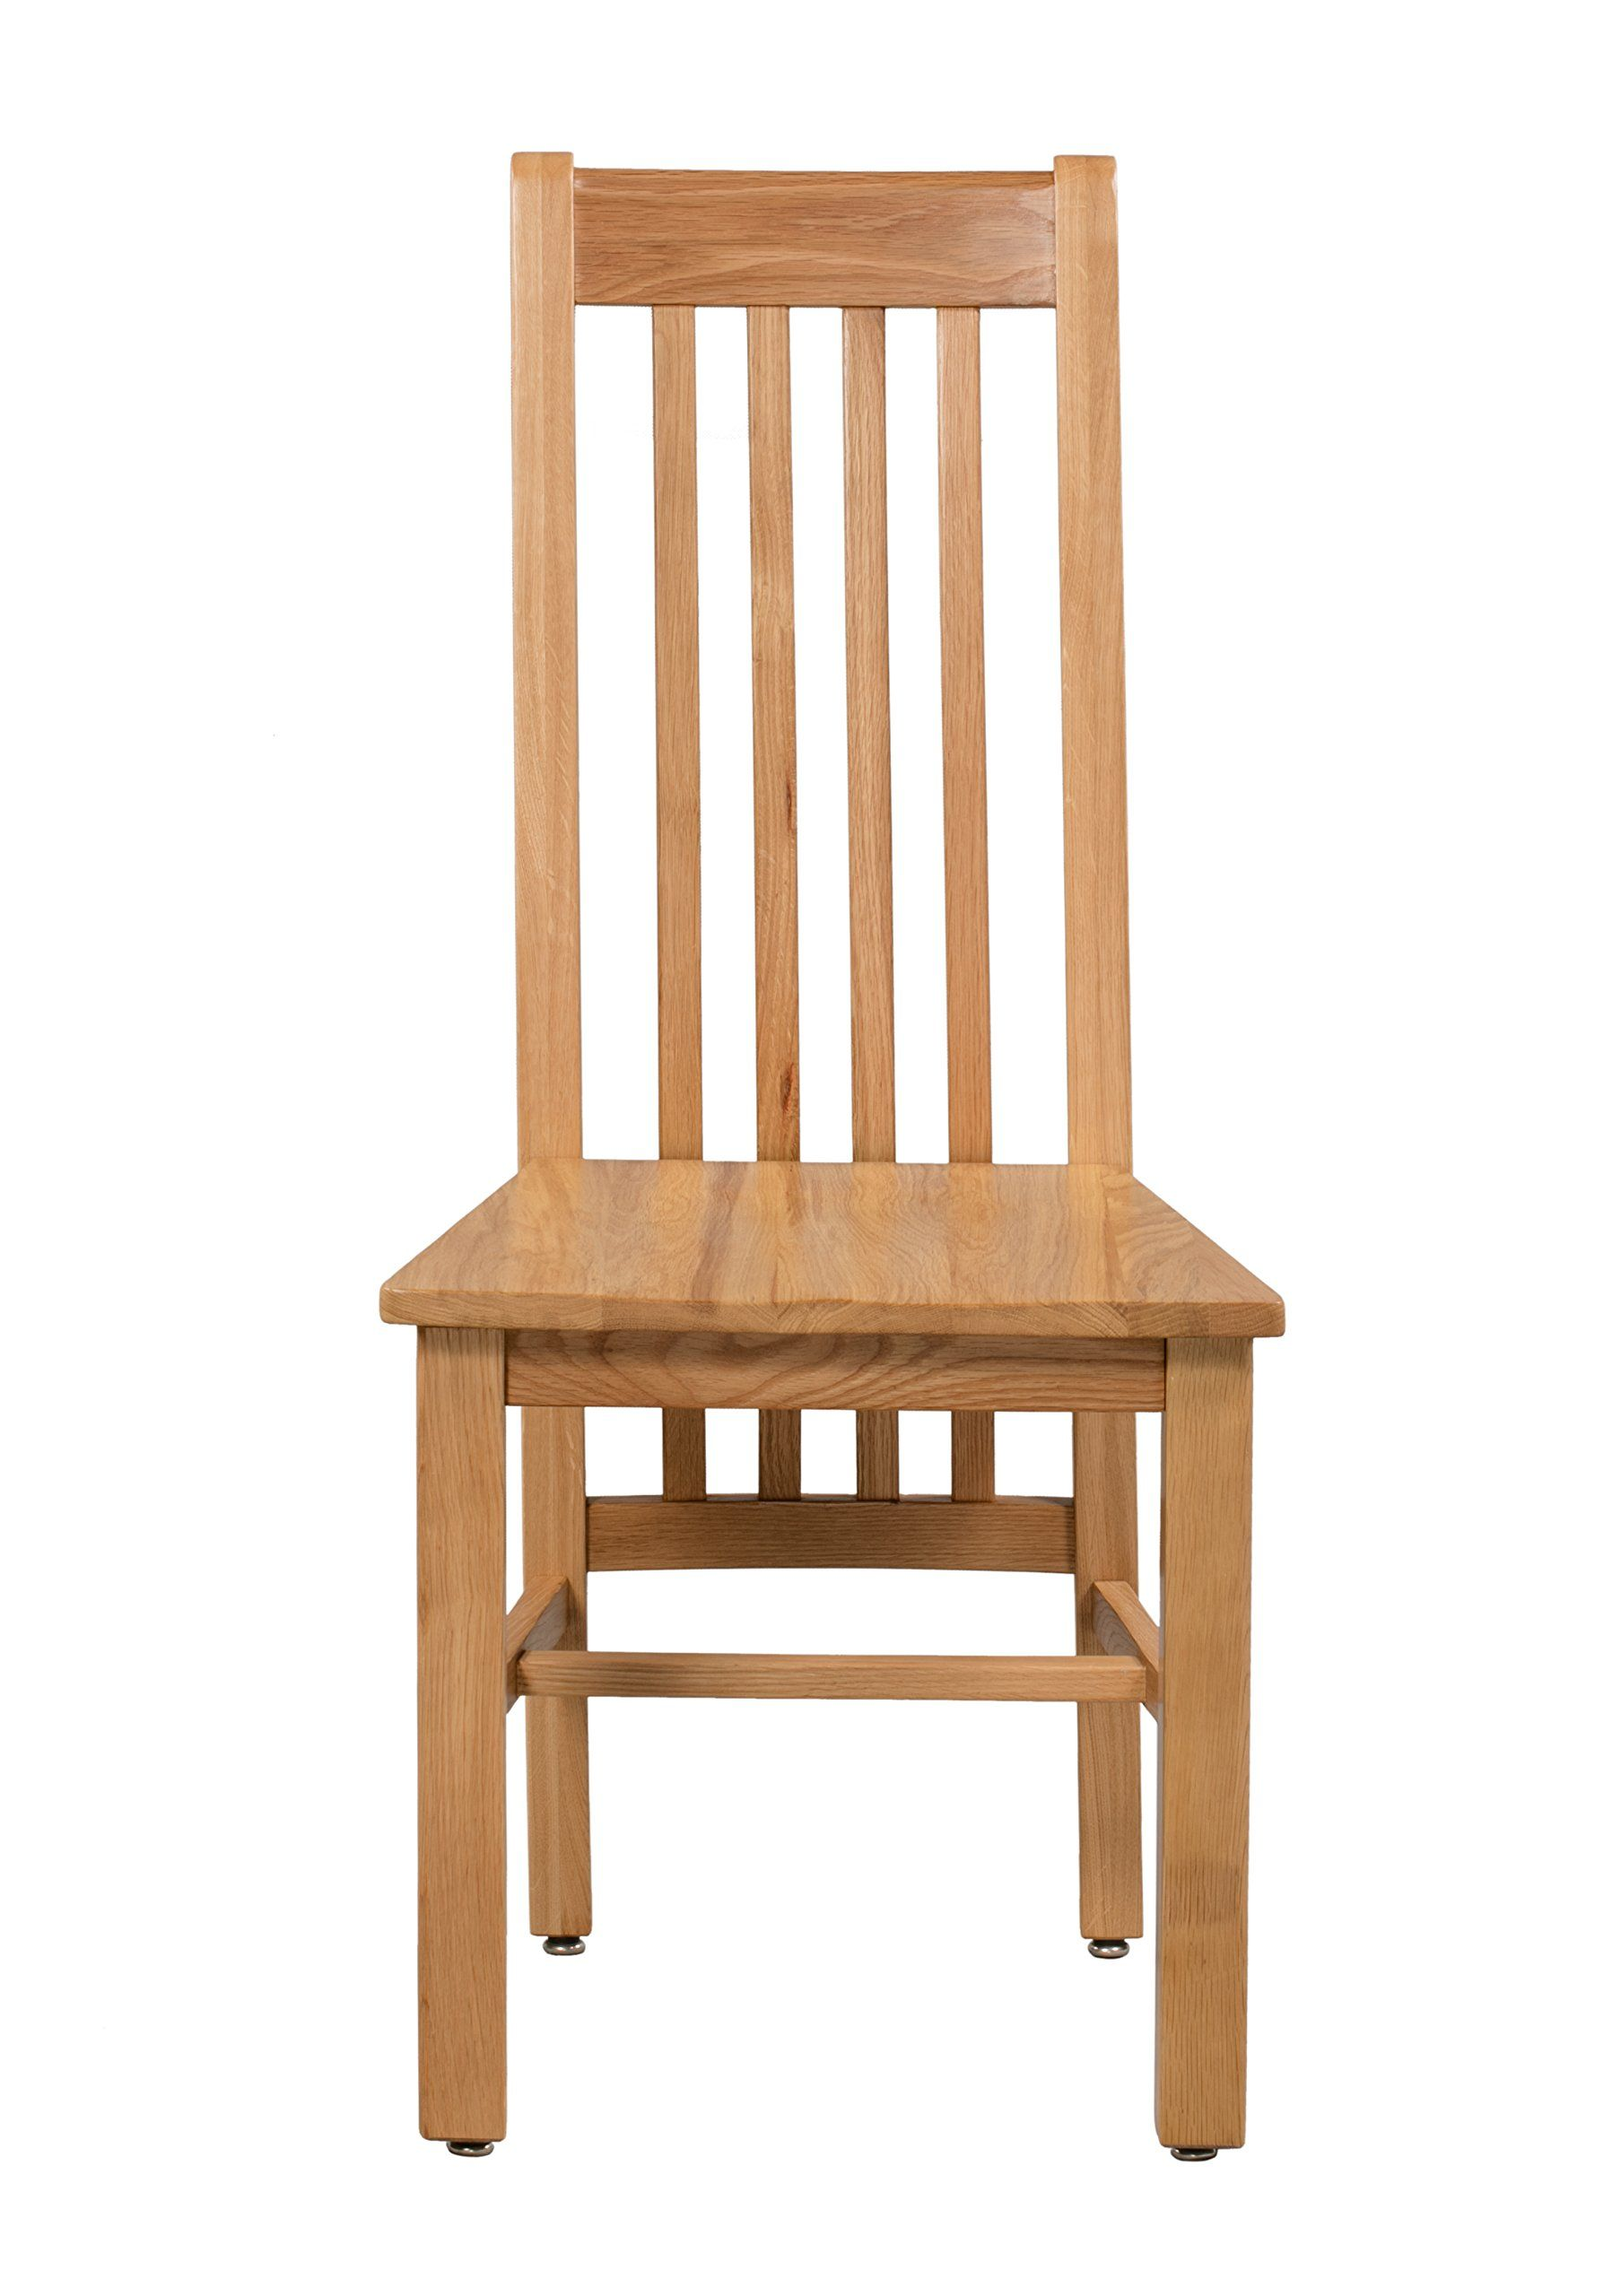 Trithi Furniture Hillsboro Real Solid Oak Dining Chair With Wooden